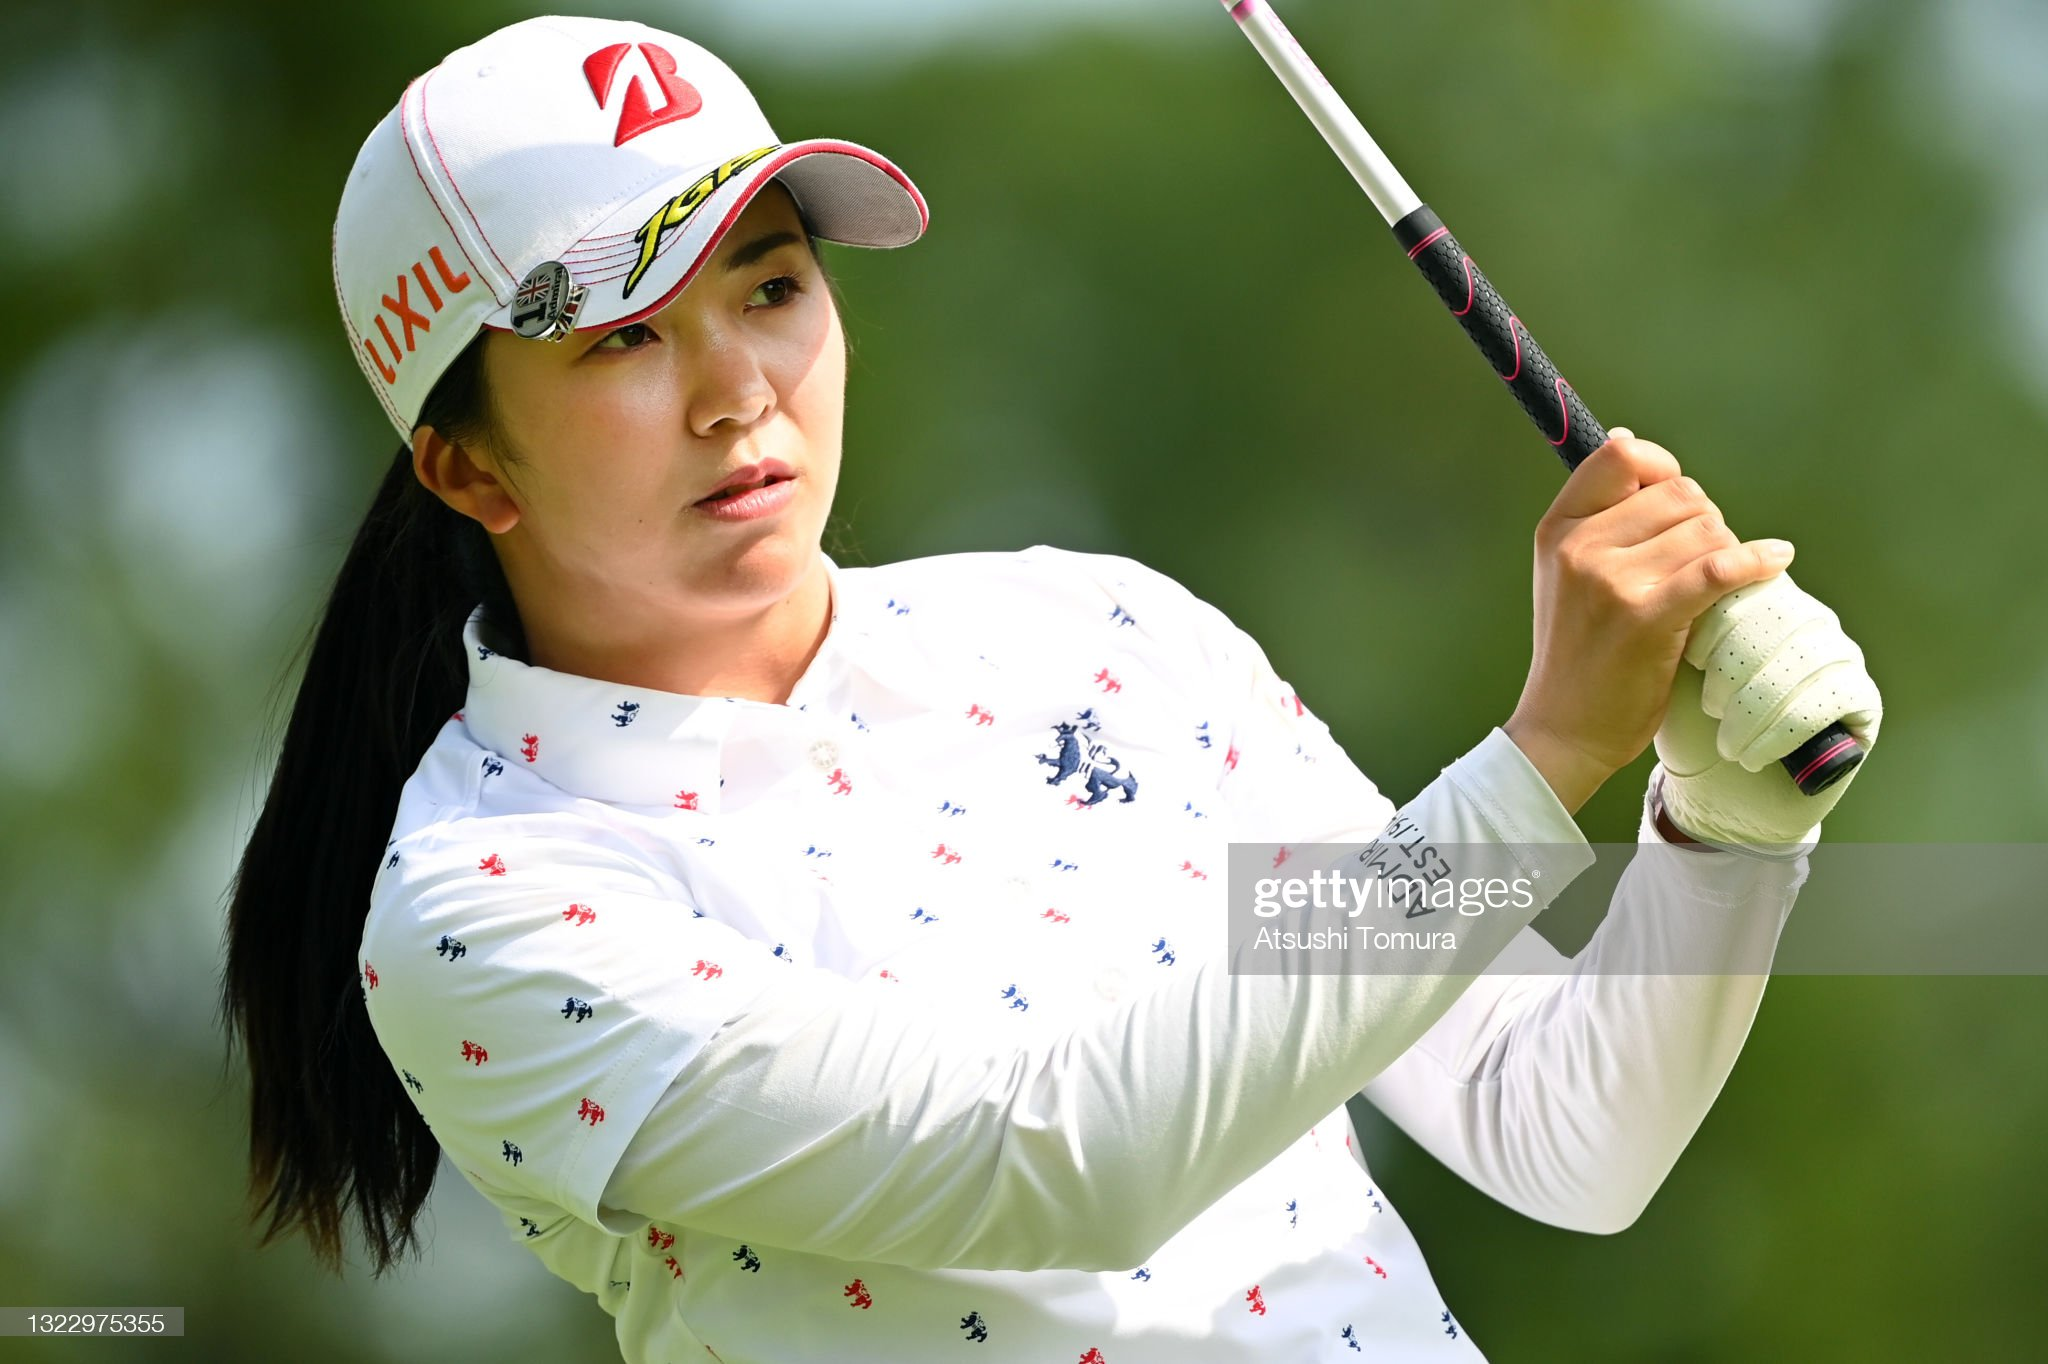 https://media.gettyimages.com/photos/kotone-hori-of-japan-hits-her-tee-shot-on-the-1st-hole-during-the-picture-id1322975355?s=2048x2048